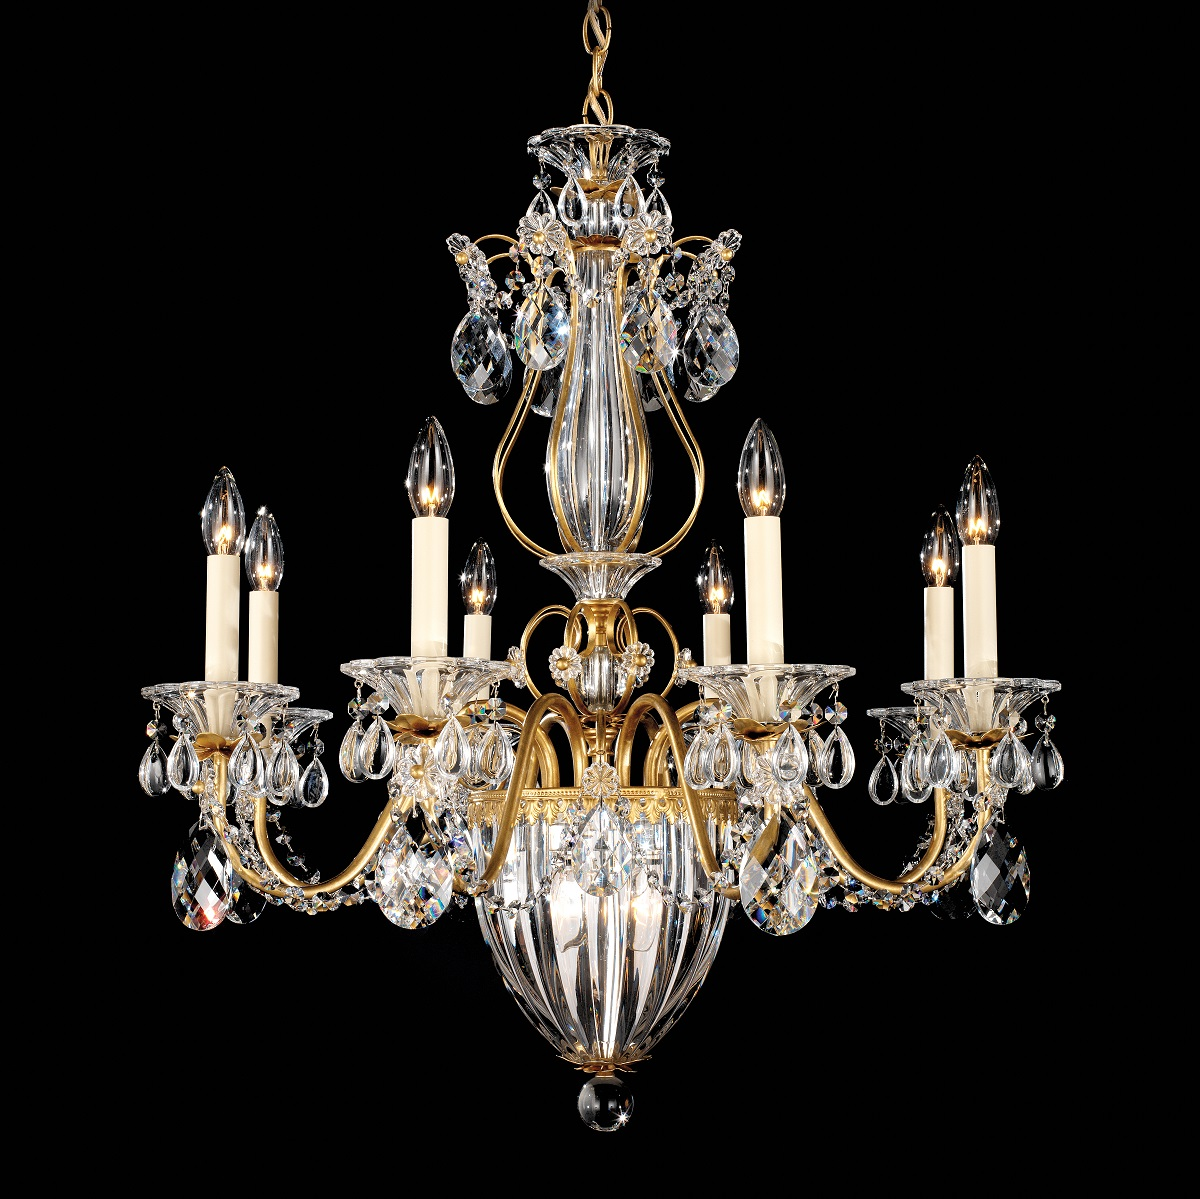 Schonbek Bagatelle Classic Chandelier Brooklyn,New York from Accentuations Brand